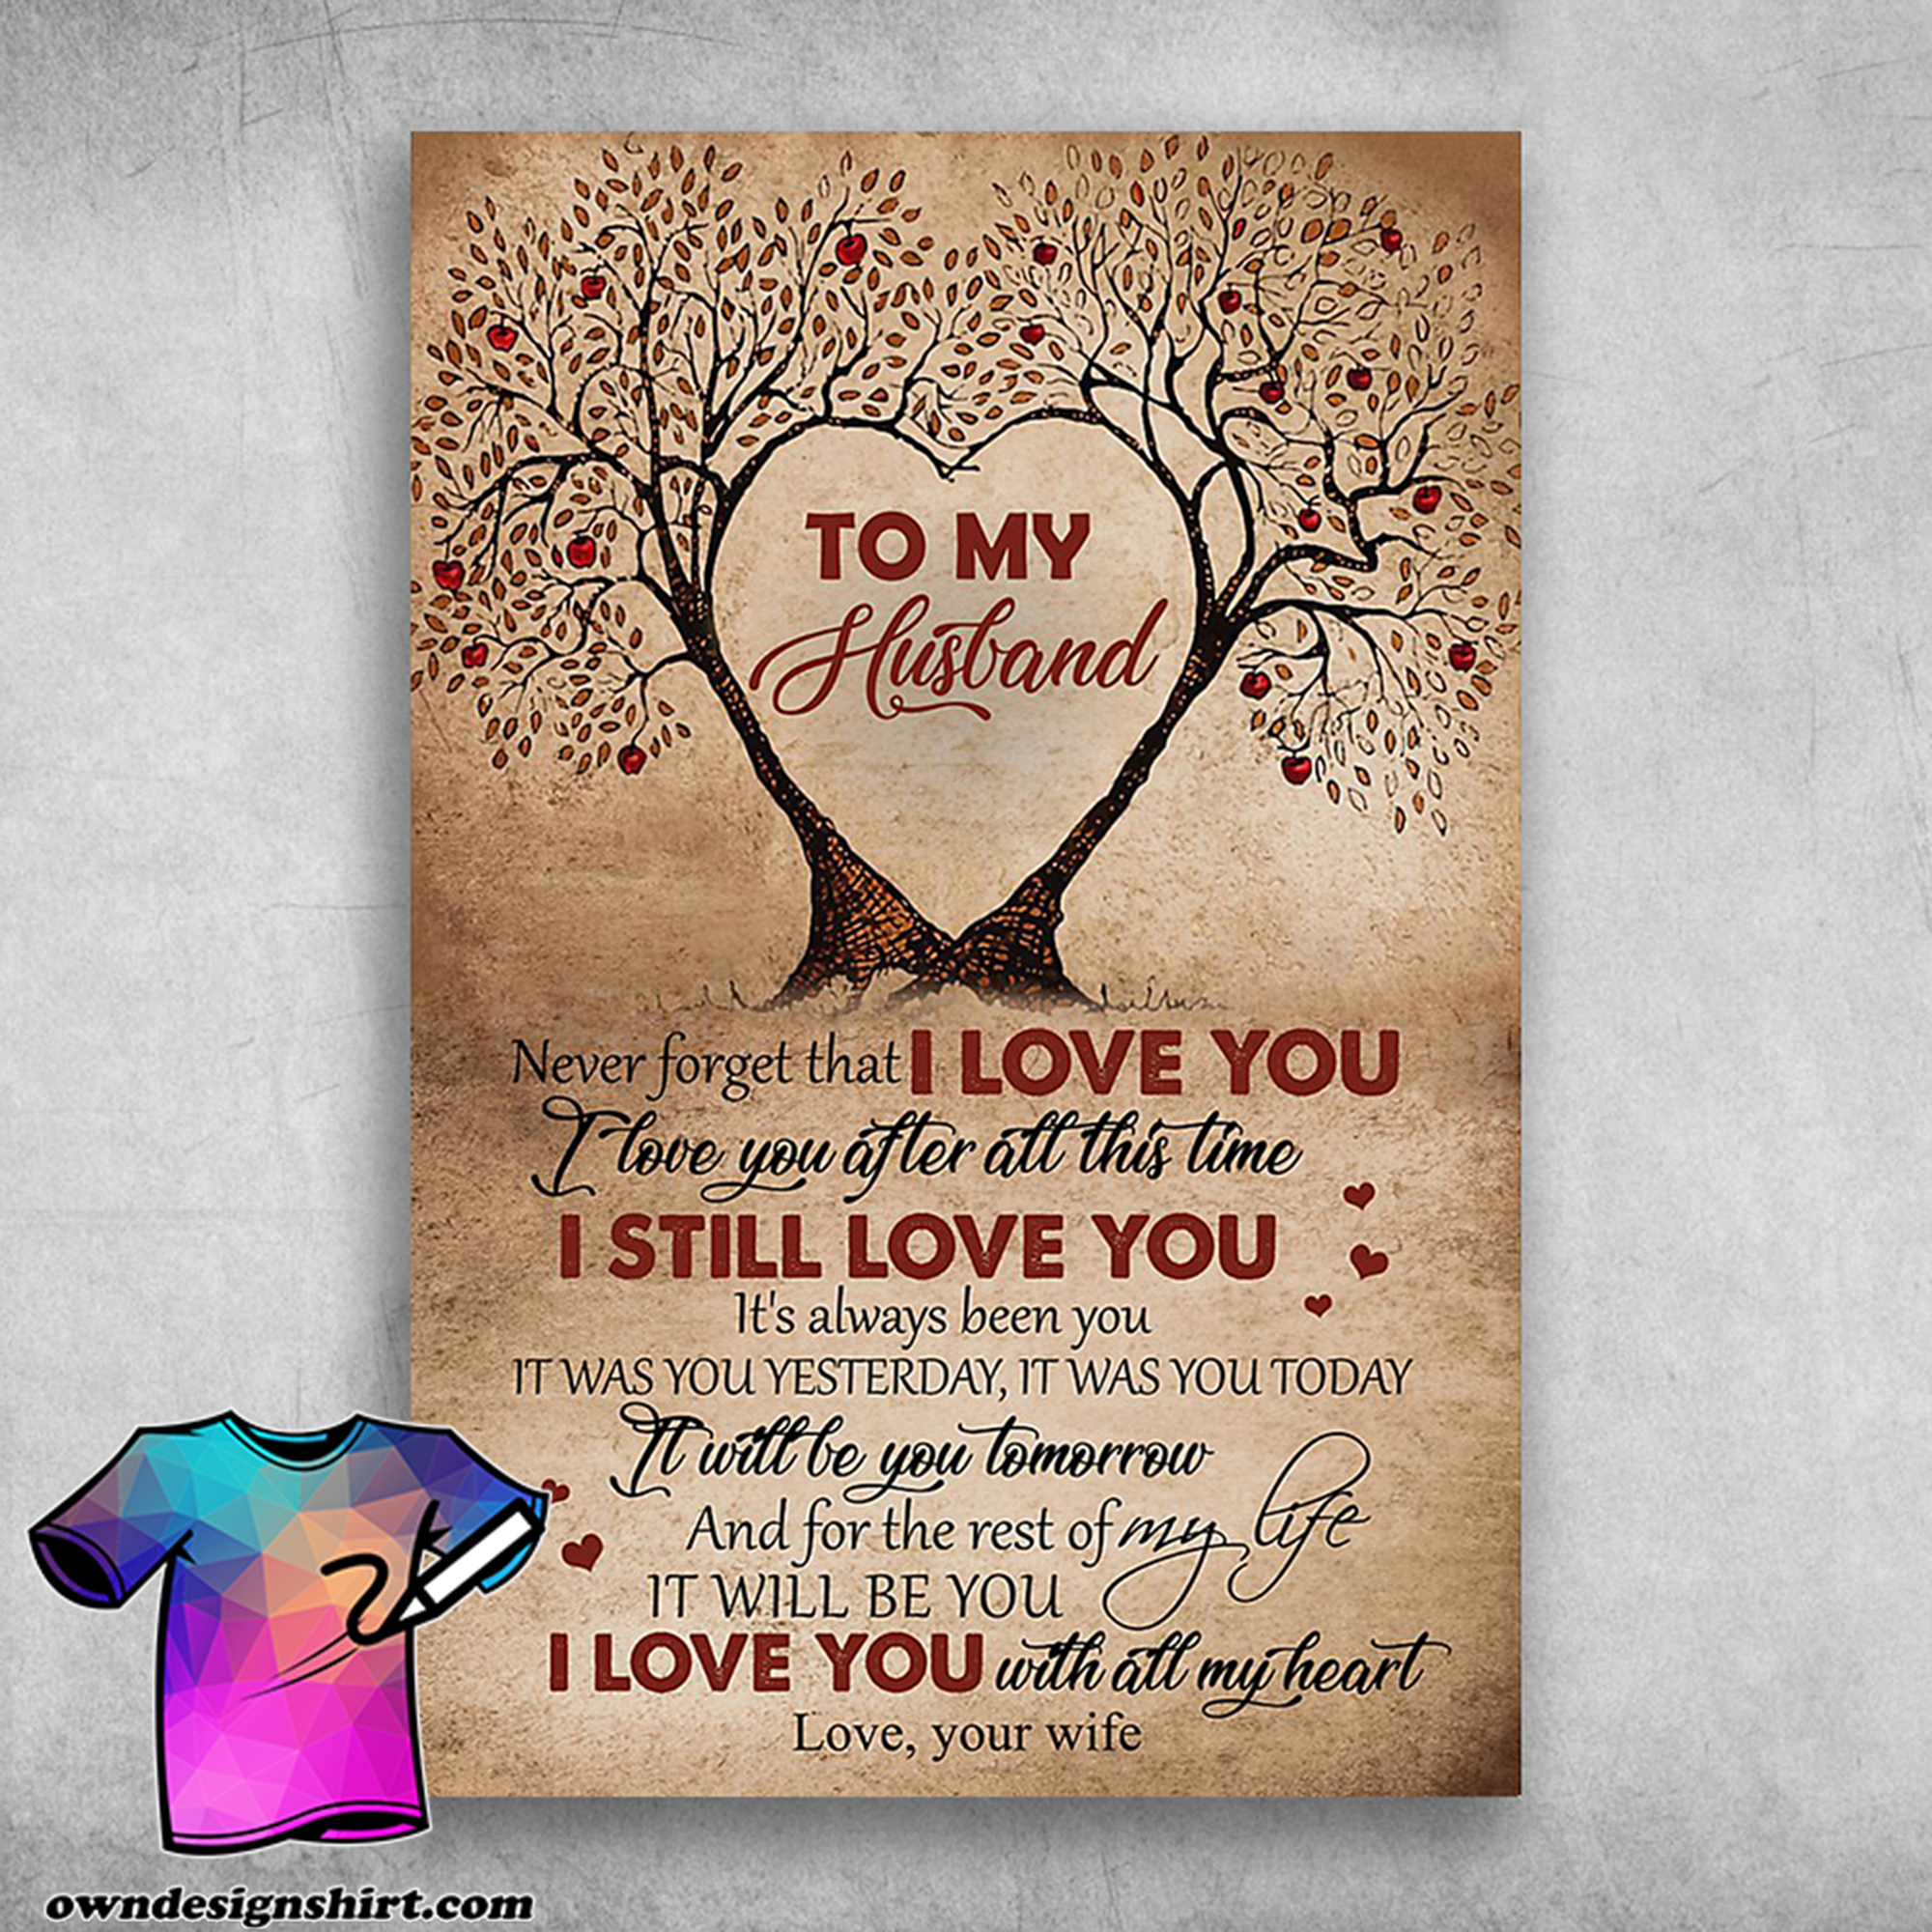 To my husband never forget that i love you with all my heart couple tree poster